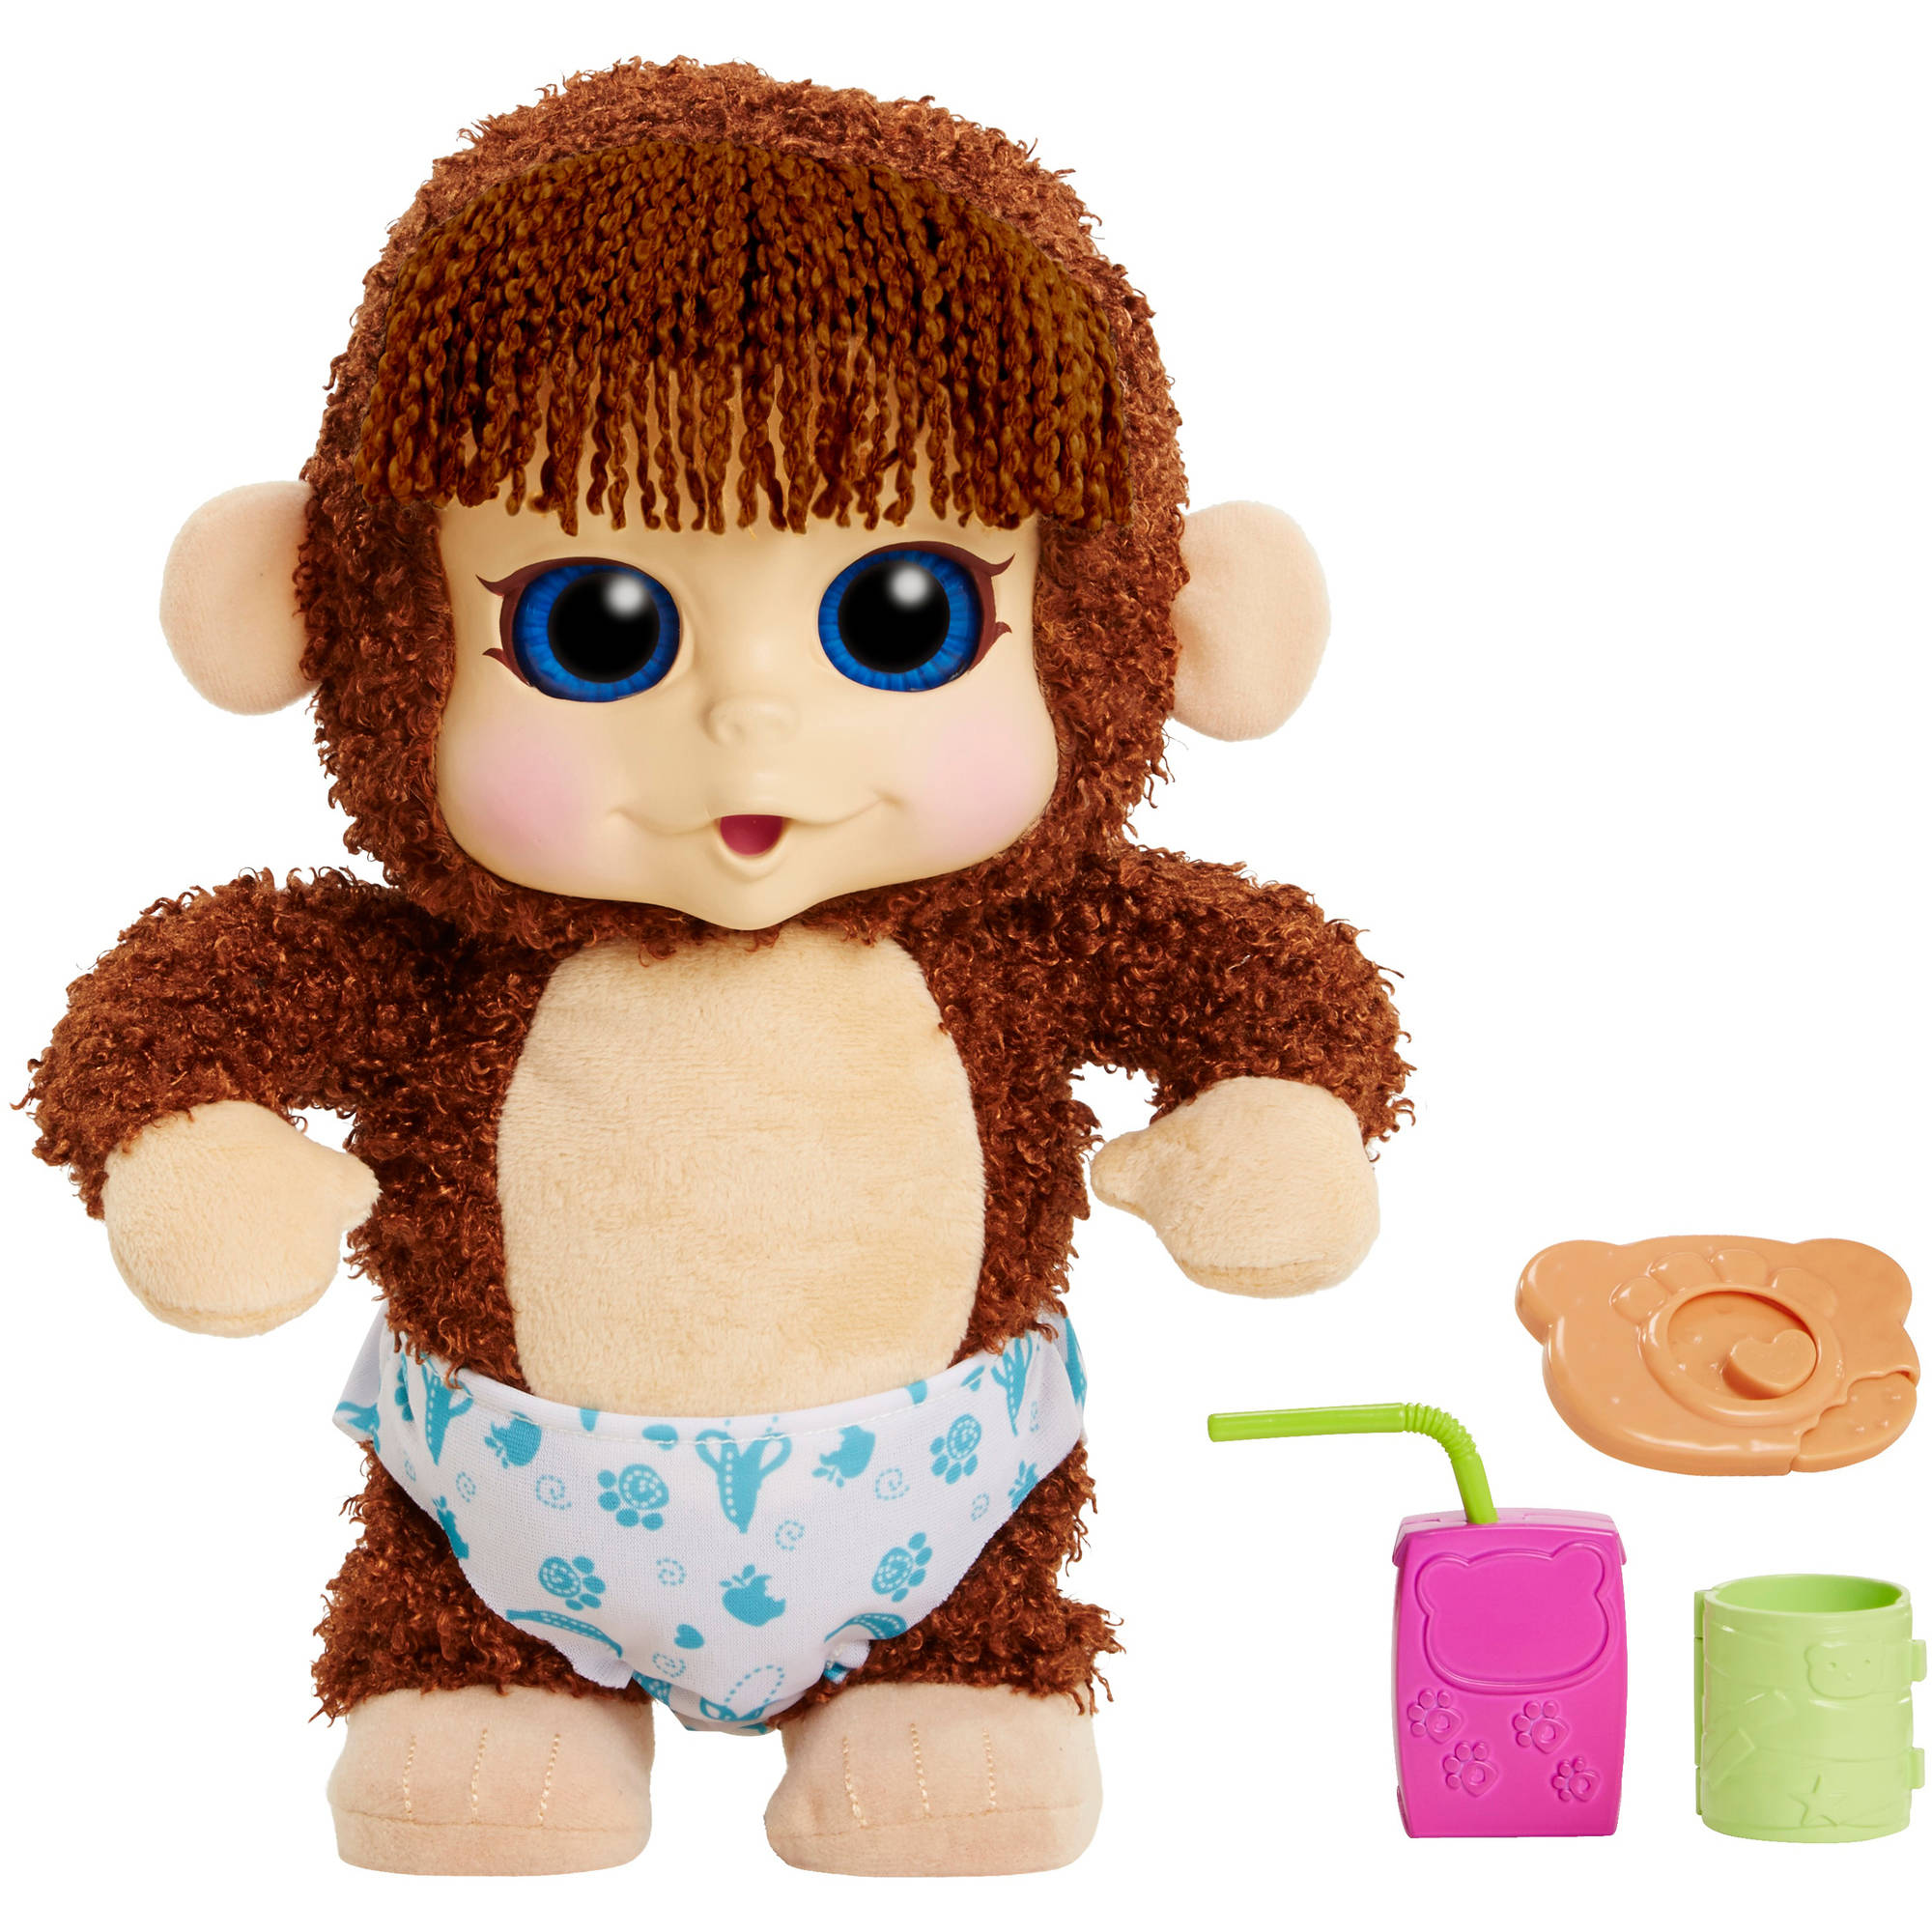 Animal Babies Feature Monkey, Jumpin Lil Monkeys, Boy